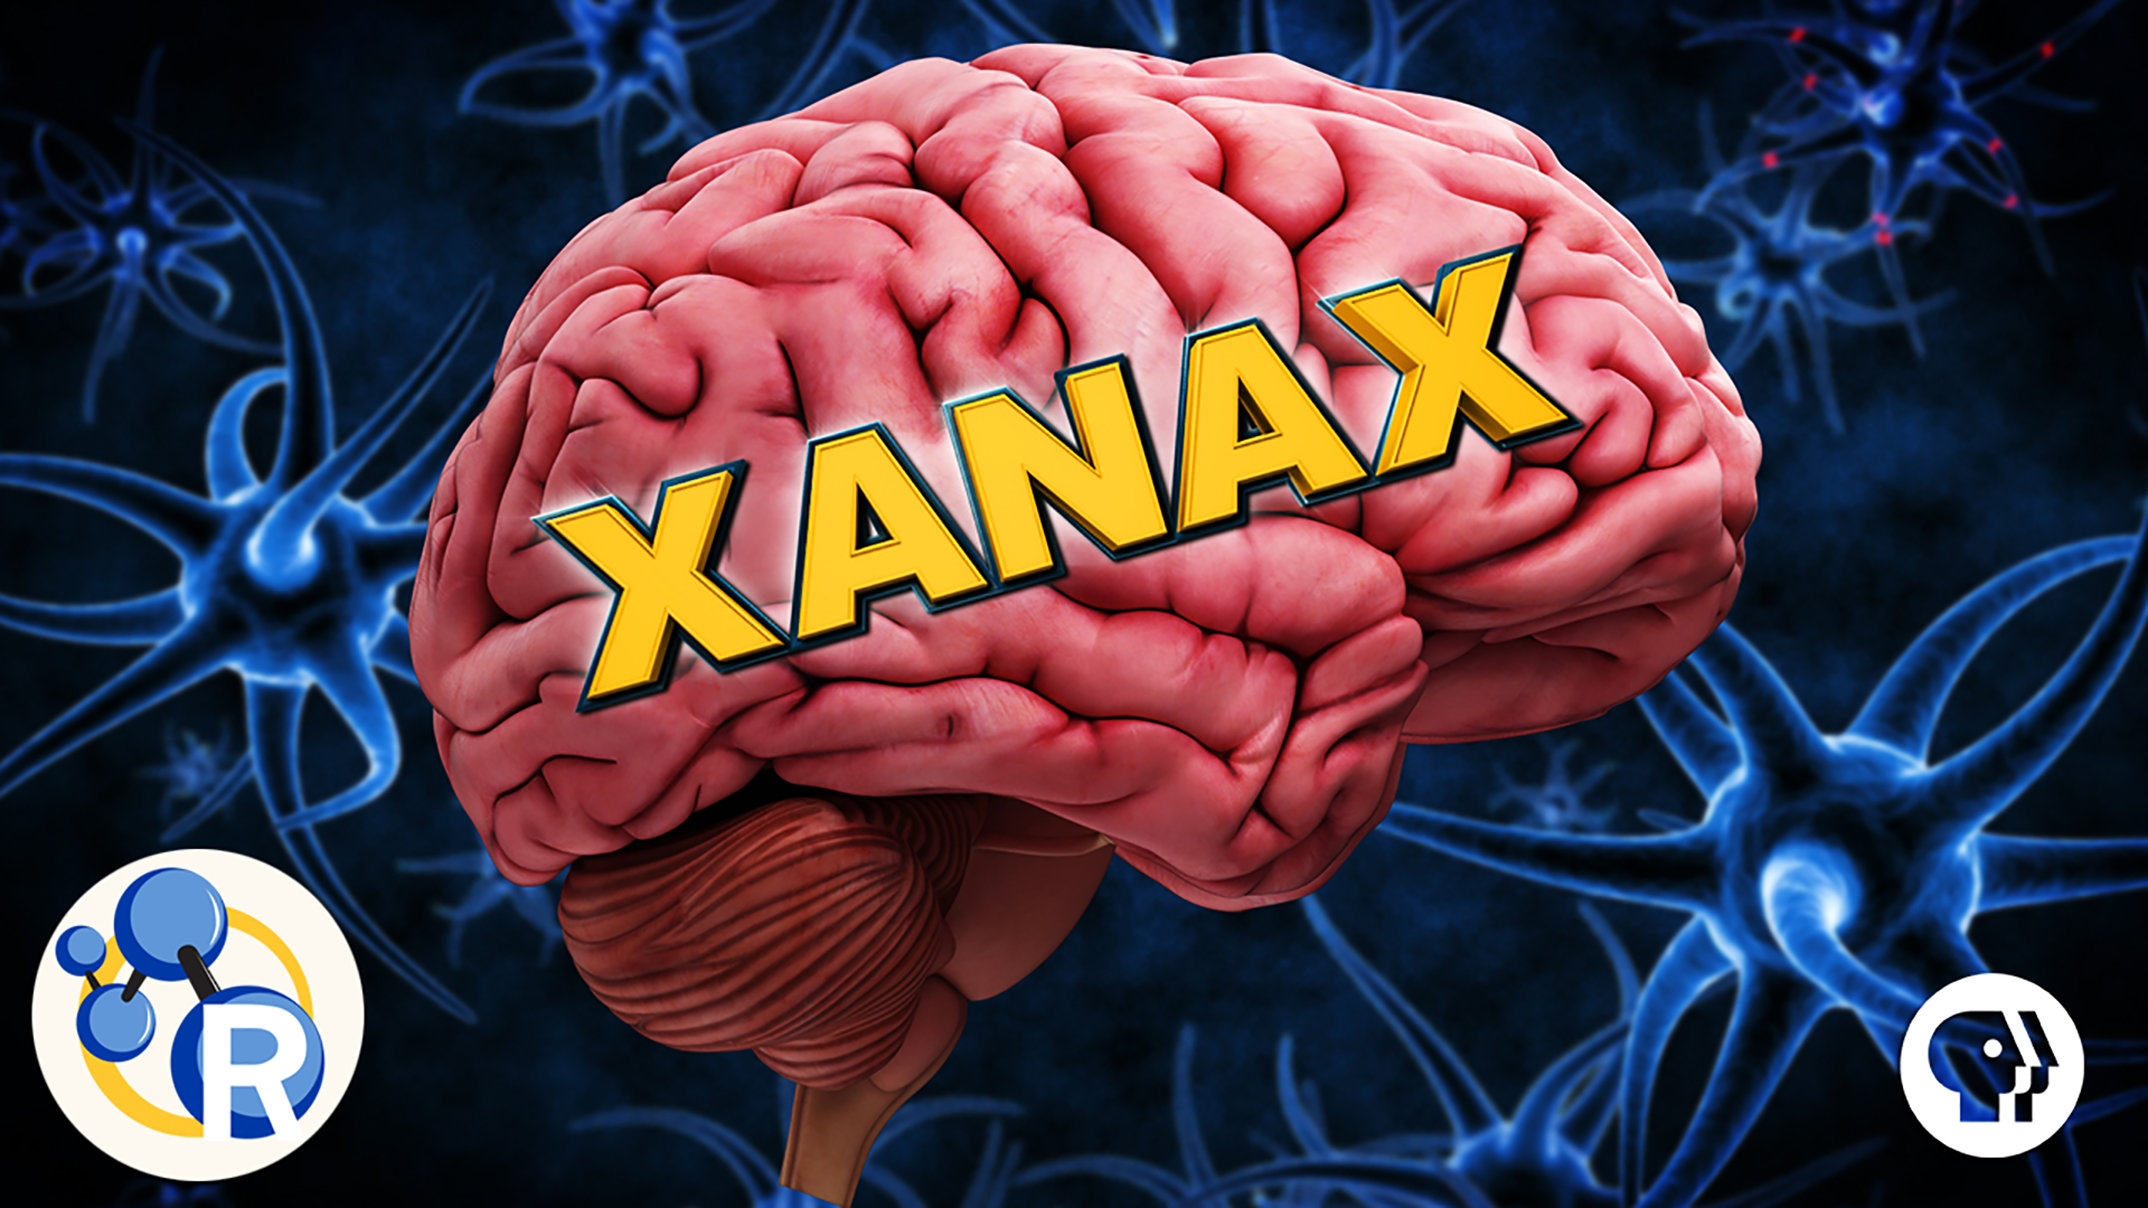 Video: How Xanax works